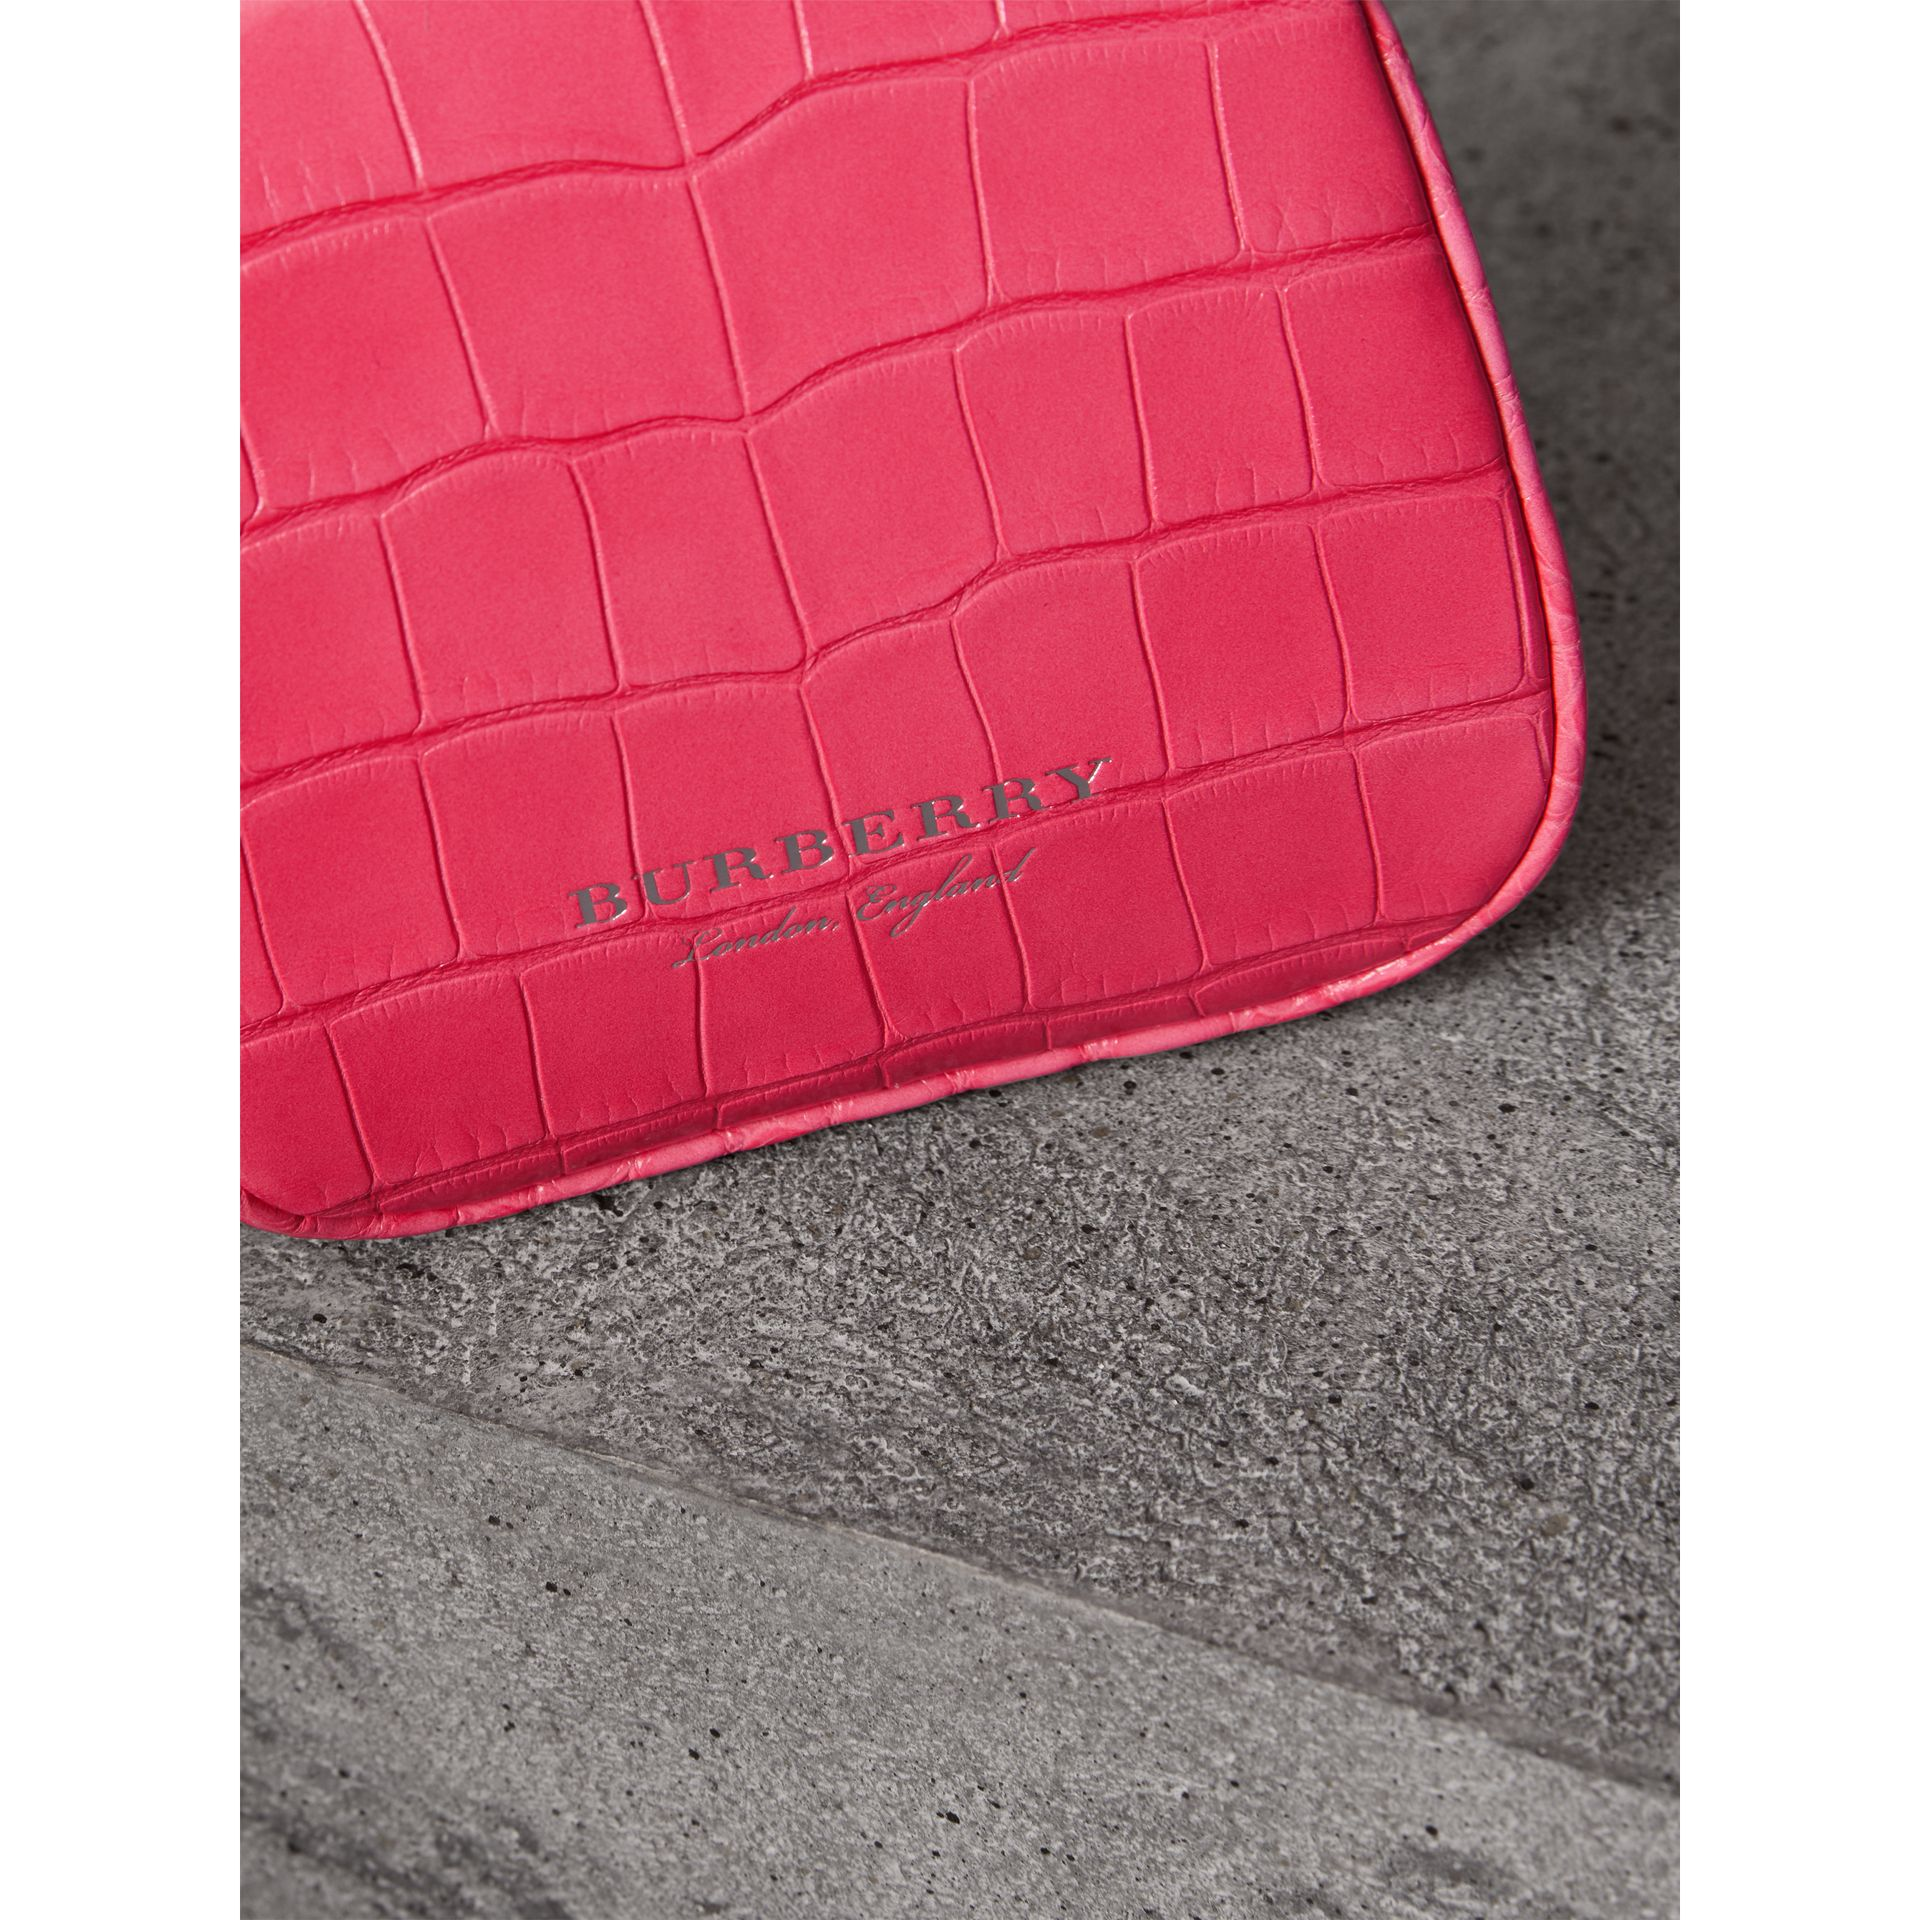 Mini sac porte-monnaie en alligator (Rose Néon) - Femme | Burberry Canada - photo de la galerie 1